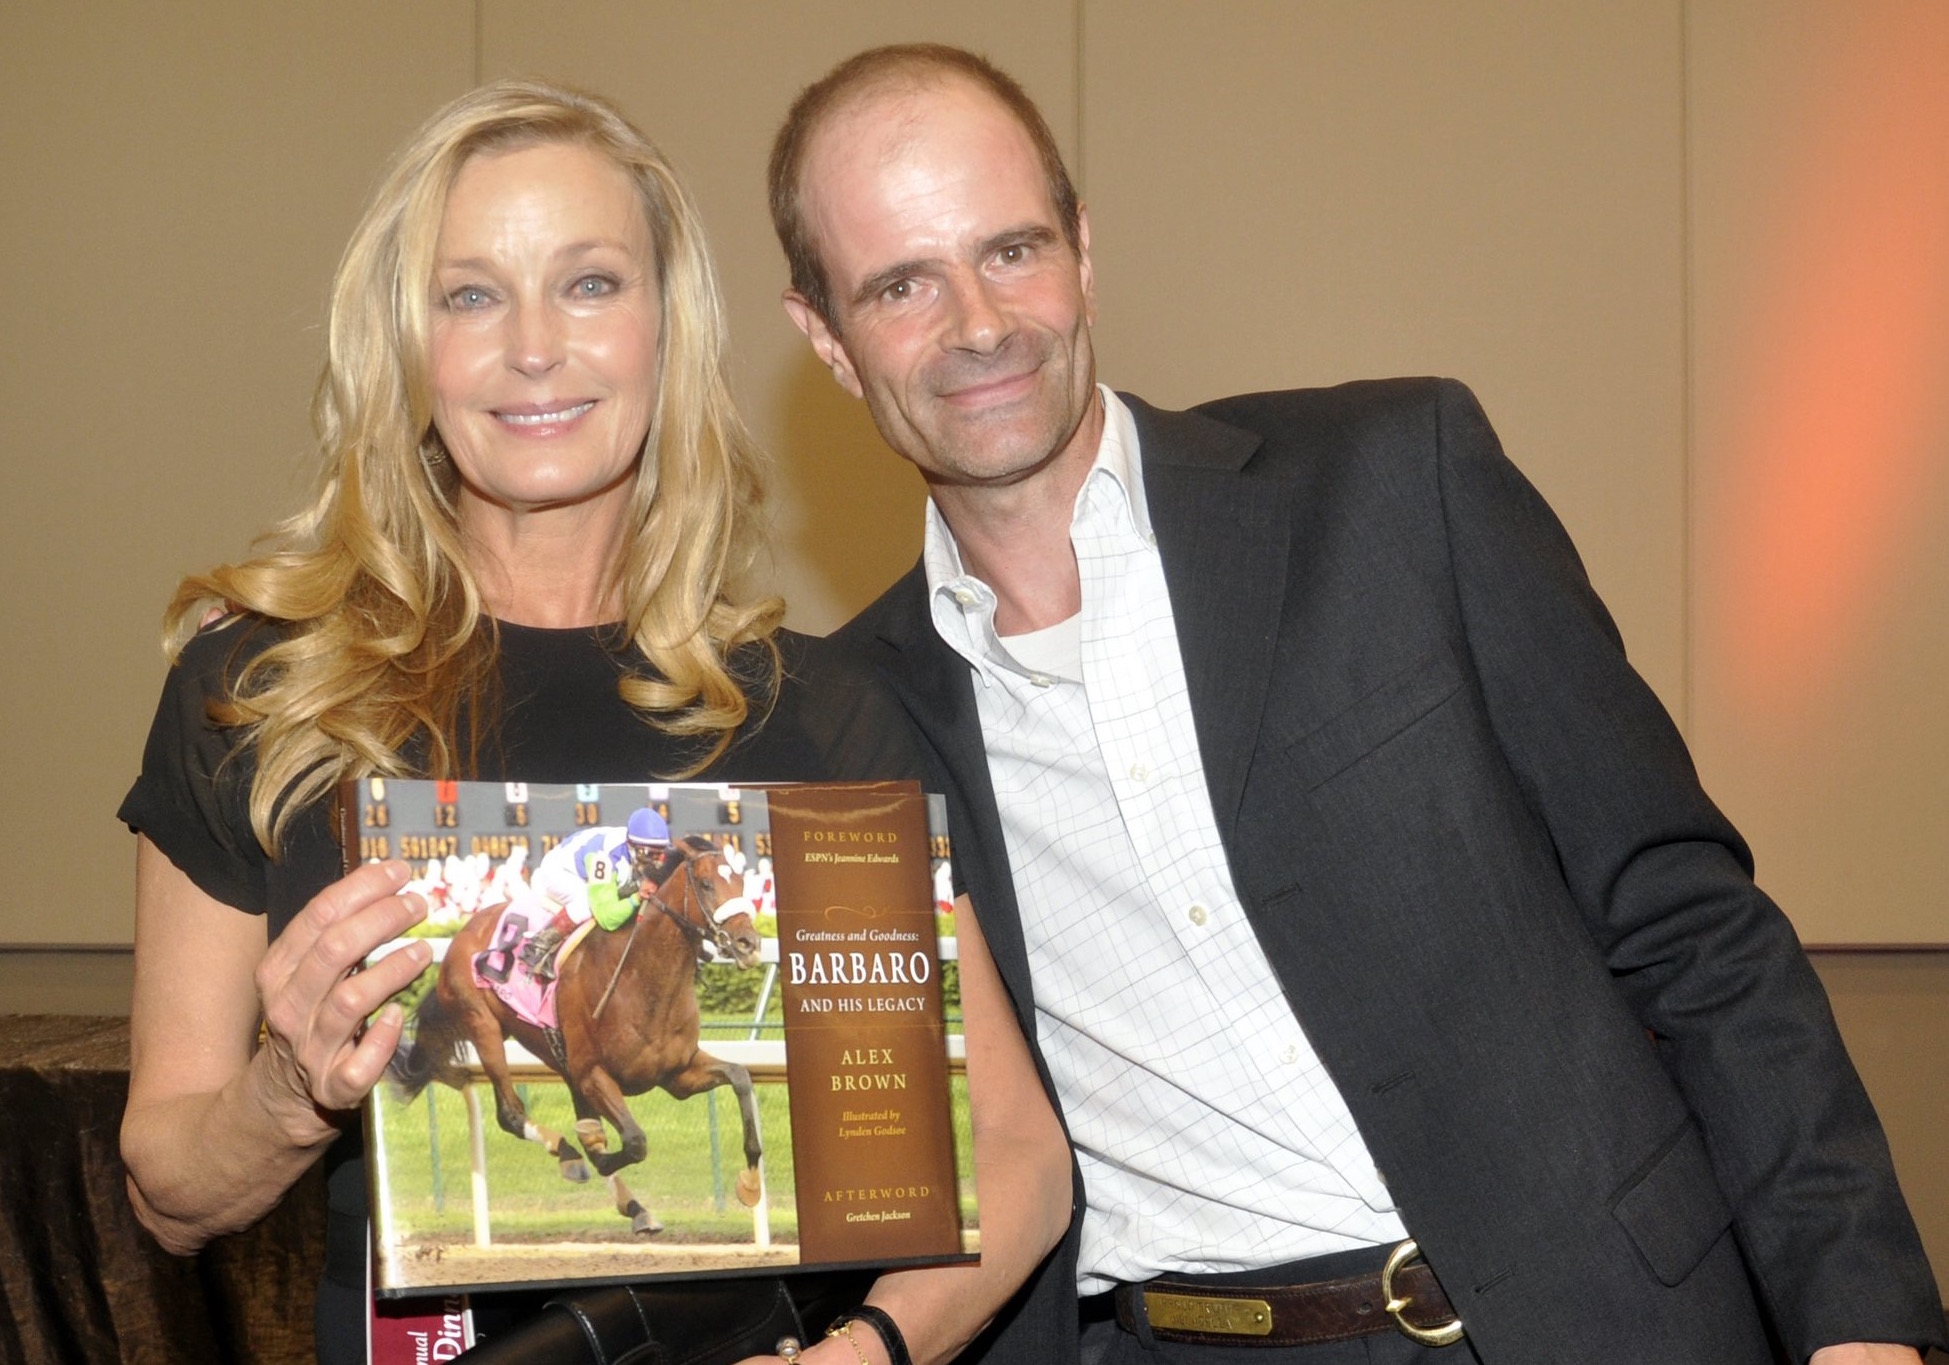 Bo Derek, the actress and former California Horse Racing Board member, with Alex Brown at the launch of his book on Barbaro